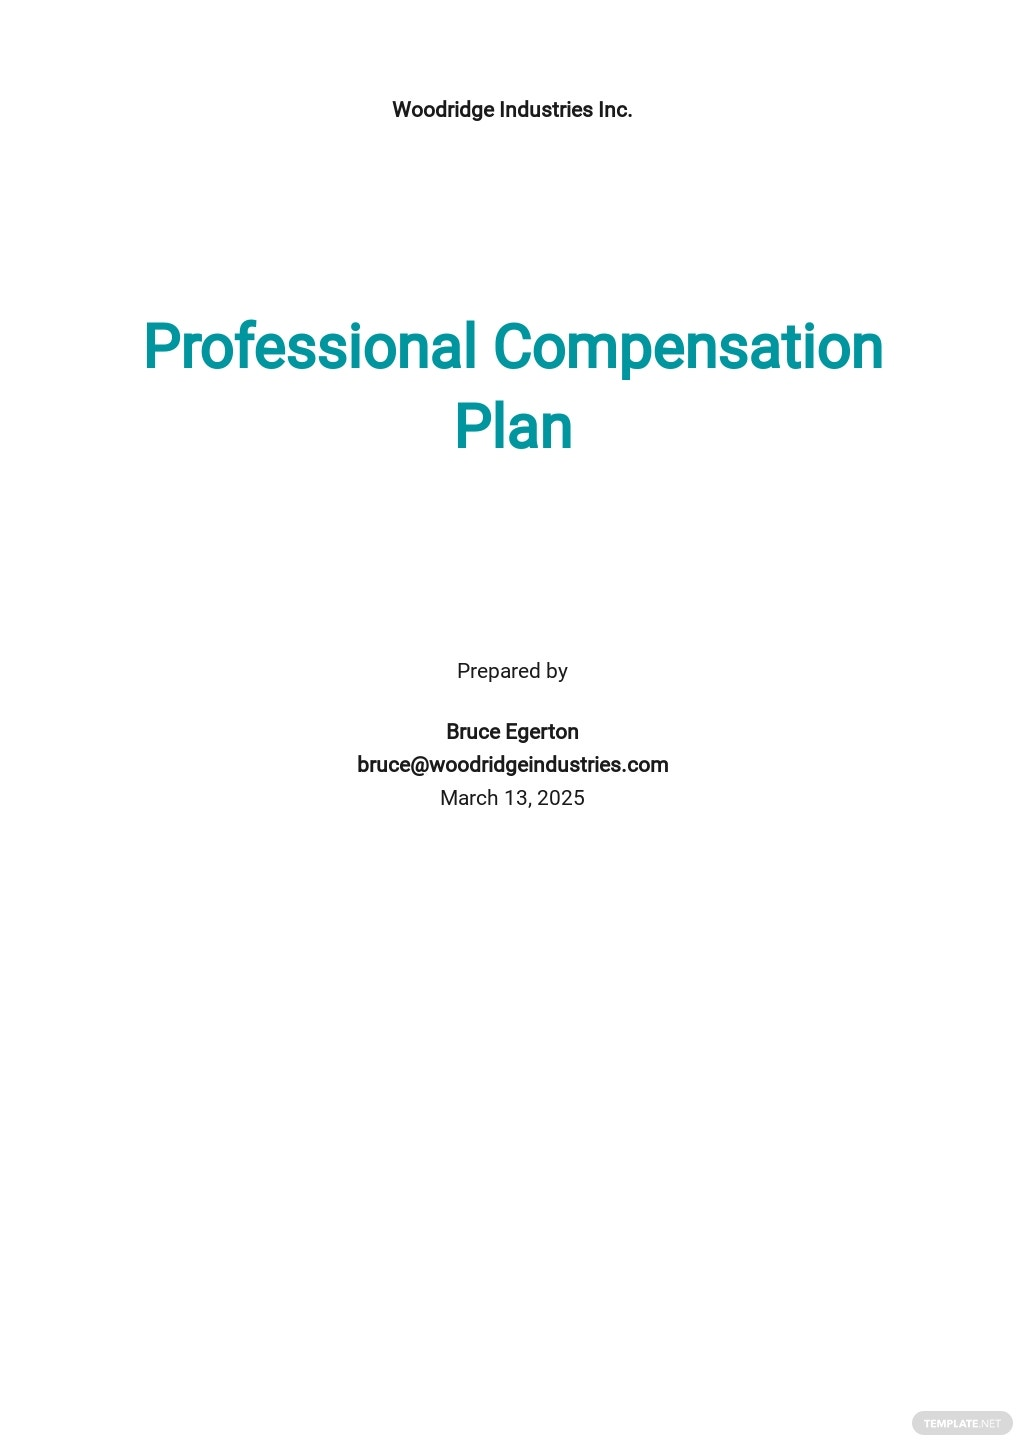 Professional Compensation Plan Template